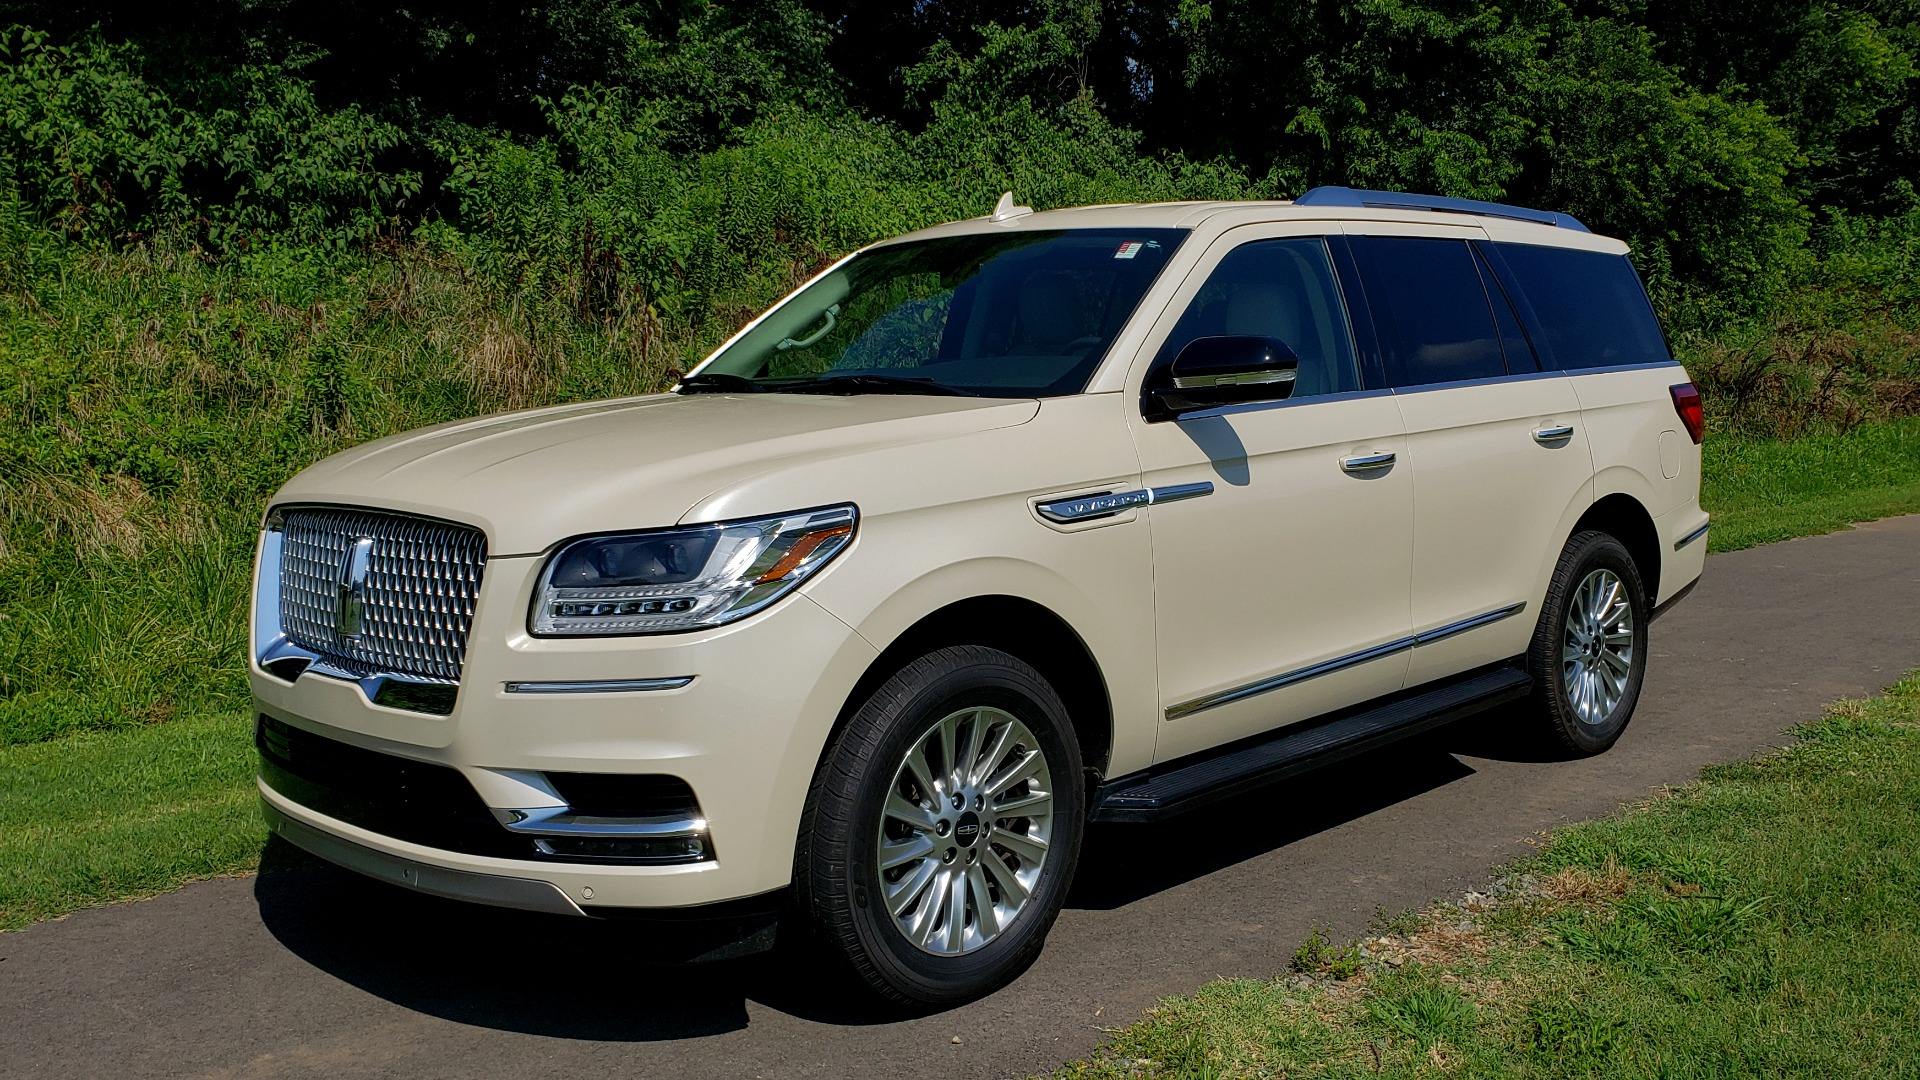 Used 2018 Lincoln NAVIGATOR PREMIERE 4X2 / TWIN-TURBO V6 / NAV / 3-ROW / REARVIEW for sale Sold at Formula Imports in Charlotte NC 28227 2